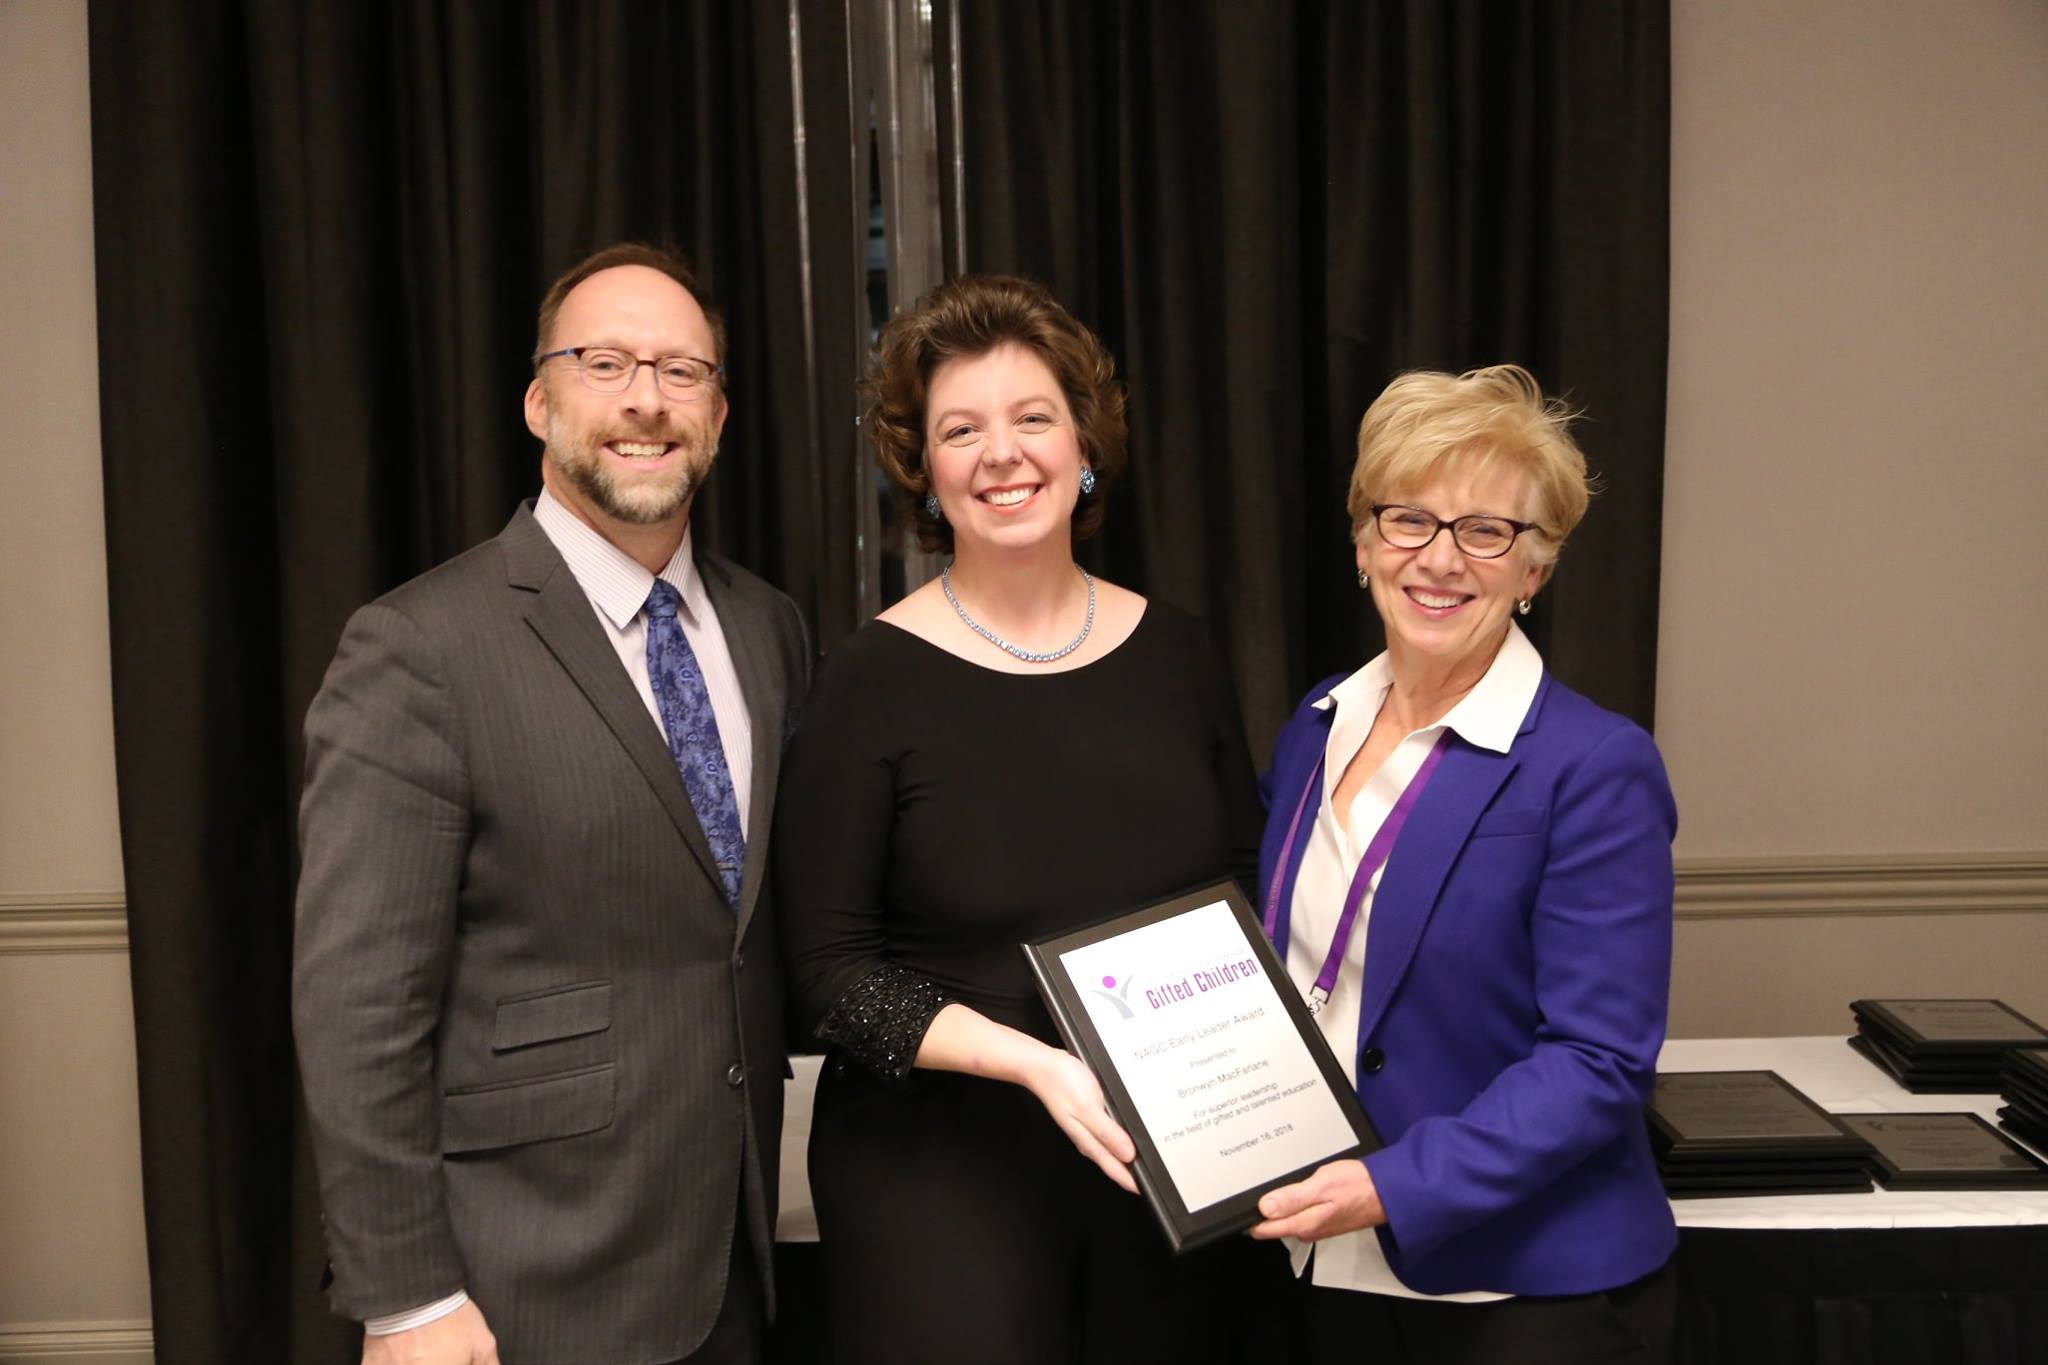 Dr. Bronwyn MacFarlane (middle) recieves the 2019-19 Early Leader award from Dr. Jonathon Plucker (left), NAGC president-elect and rofessor at Johns Hopkins University, and Dr. Sally Krisel, NAGC president and faculty at University of Georgia, at the 65th Annual Convention Celebration of Excellence Awards Ceremony of the National Association for Gifted Children.